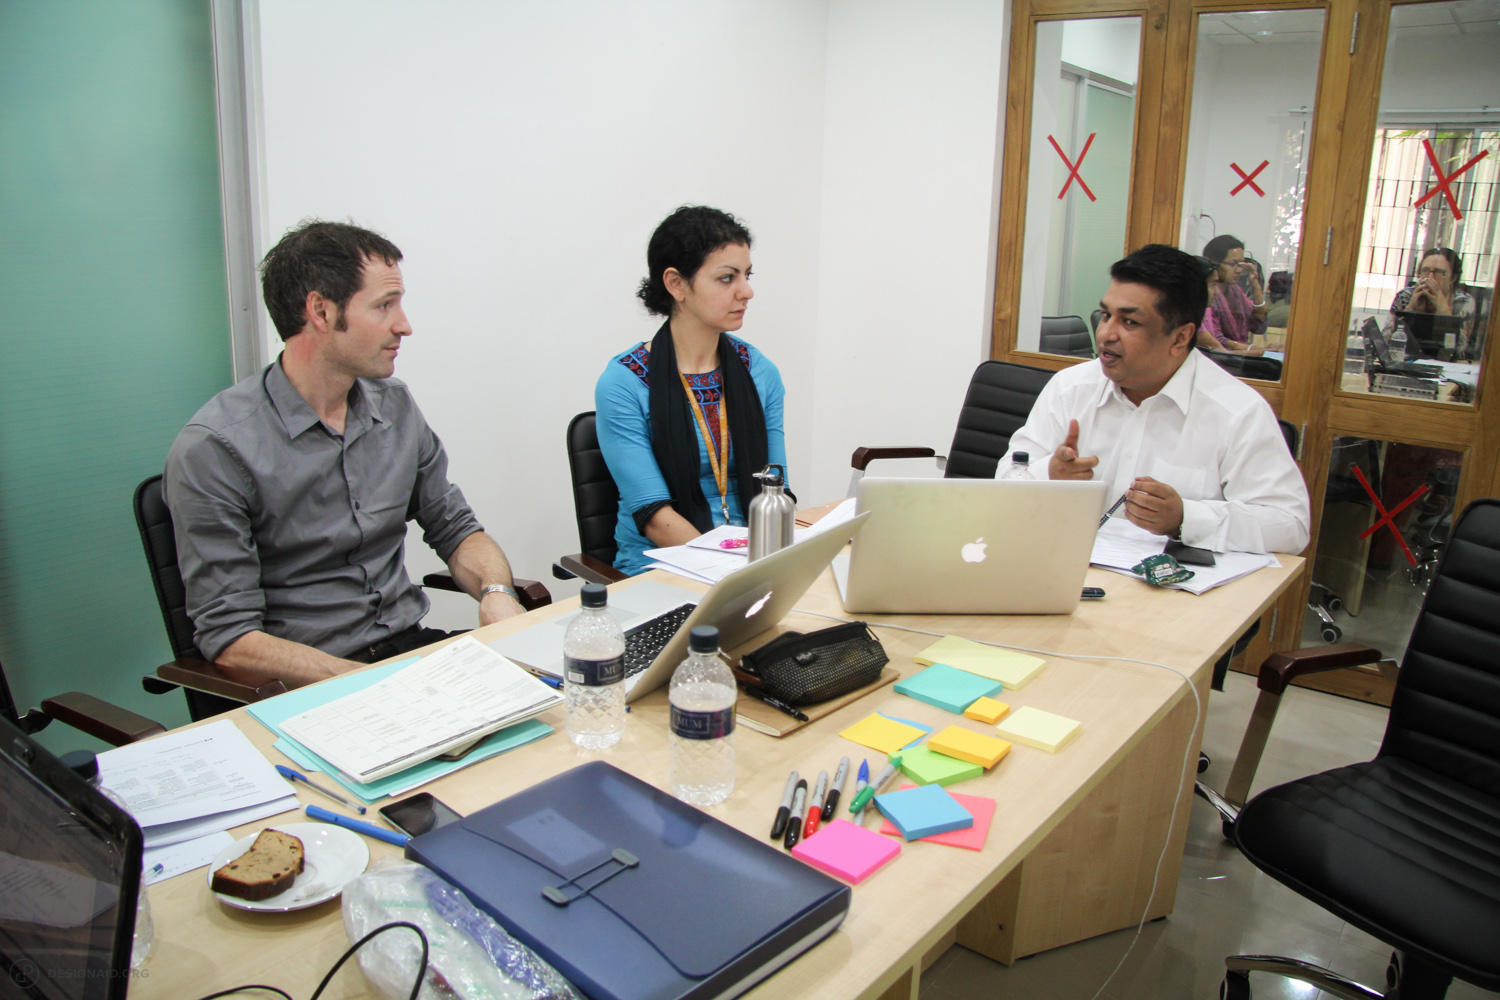 Our team brainstorming solutions at ICDDR,B in Dhaka